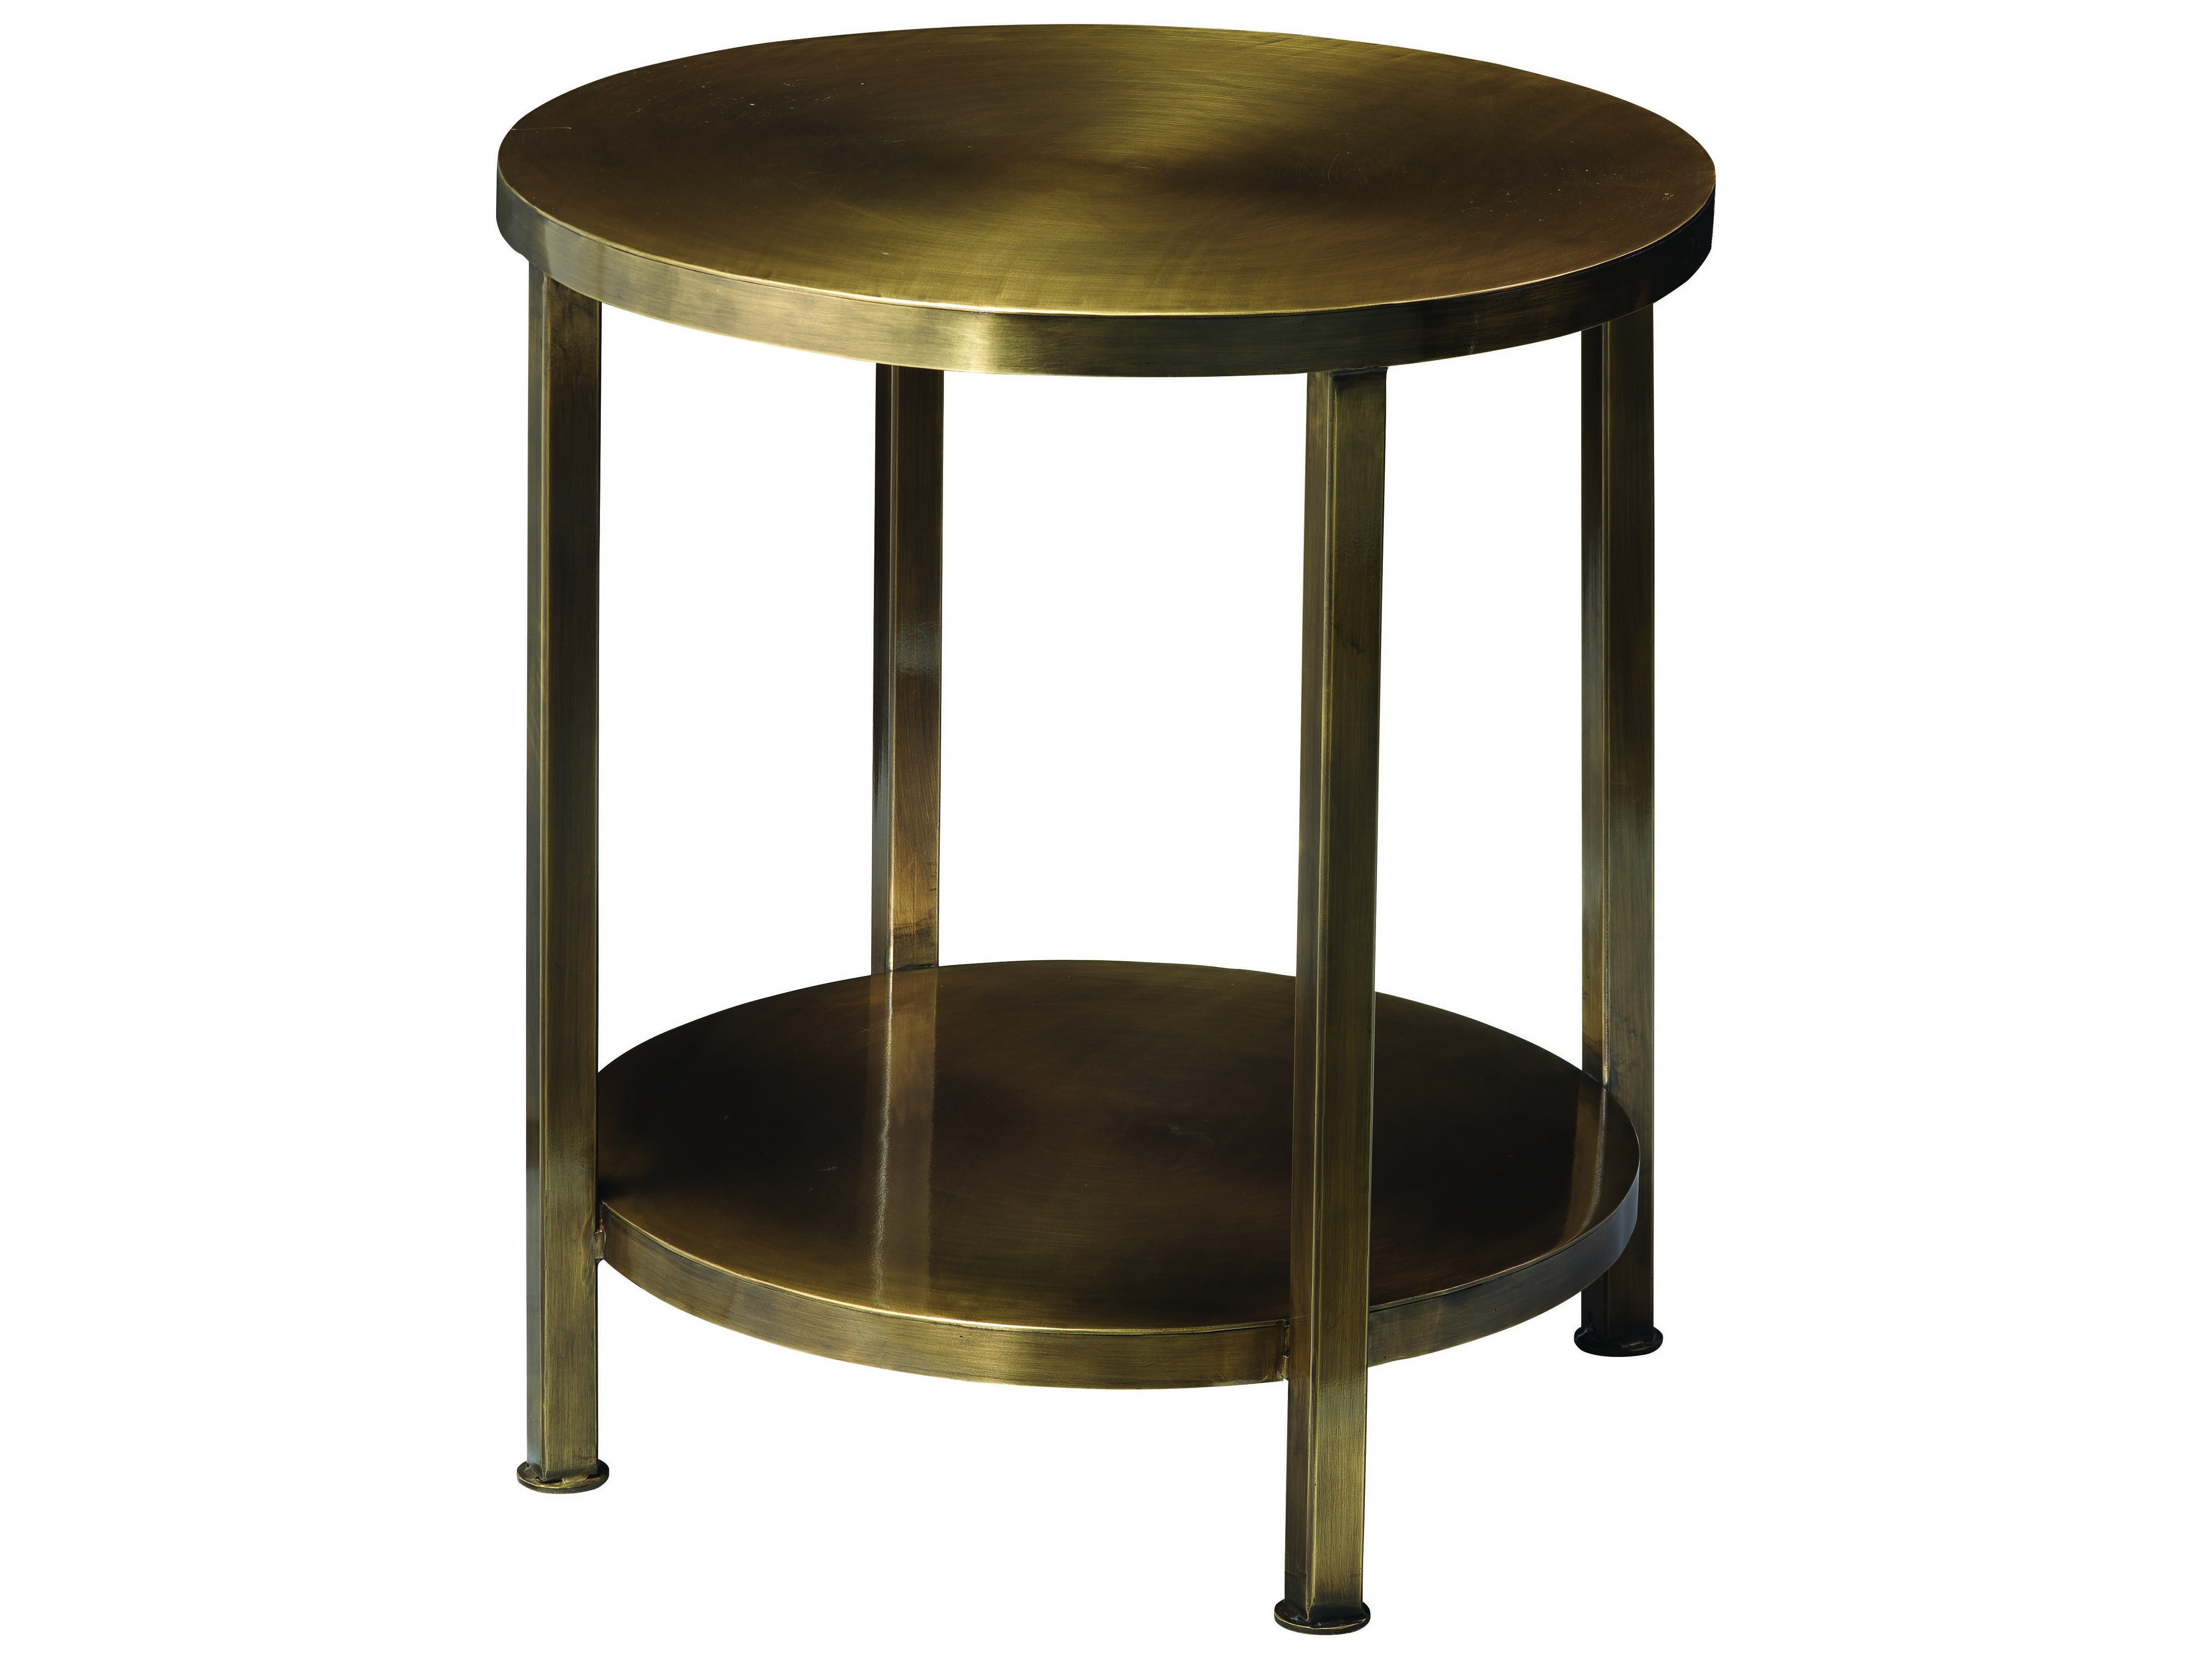 Jamie young company alloy 20 39 39 round antique brass side - Antique side tables for living room ...